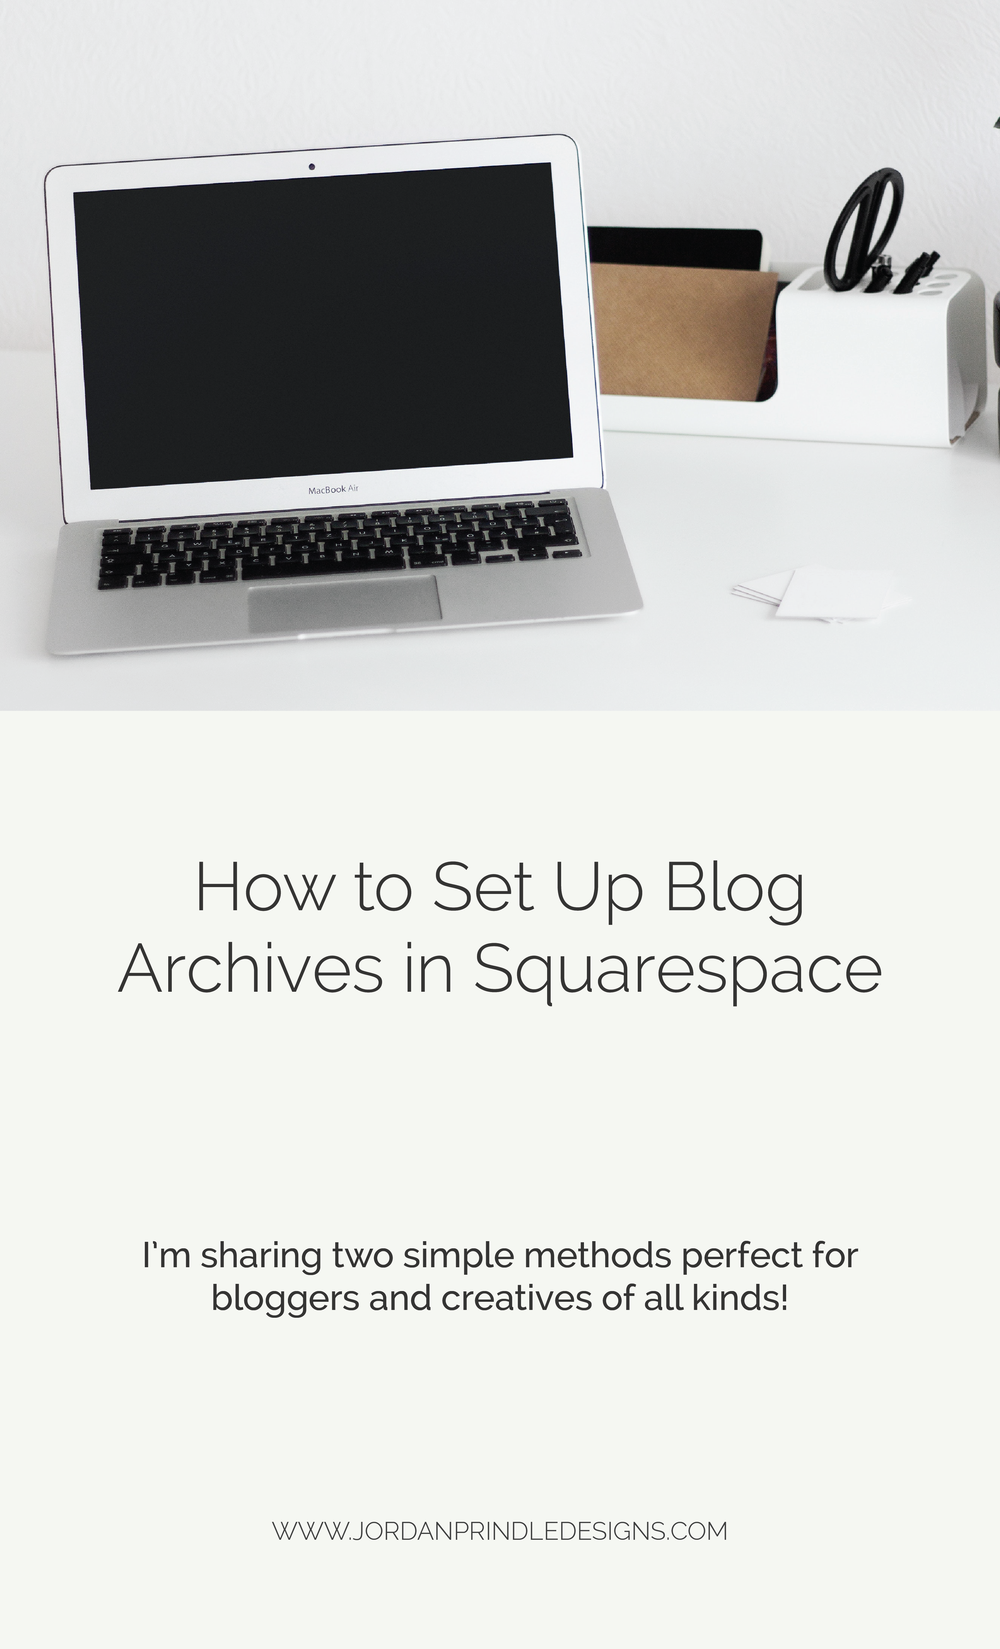 How to Set Up Blog Archives in Squarespace | A step by step #squarespacetutorial on how to add an archives page for your blog and website. Keep reading at www.jordanprindledesigns.com #squarespace #webdesigntips #squarespacetips